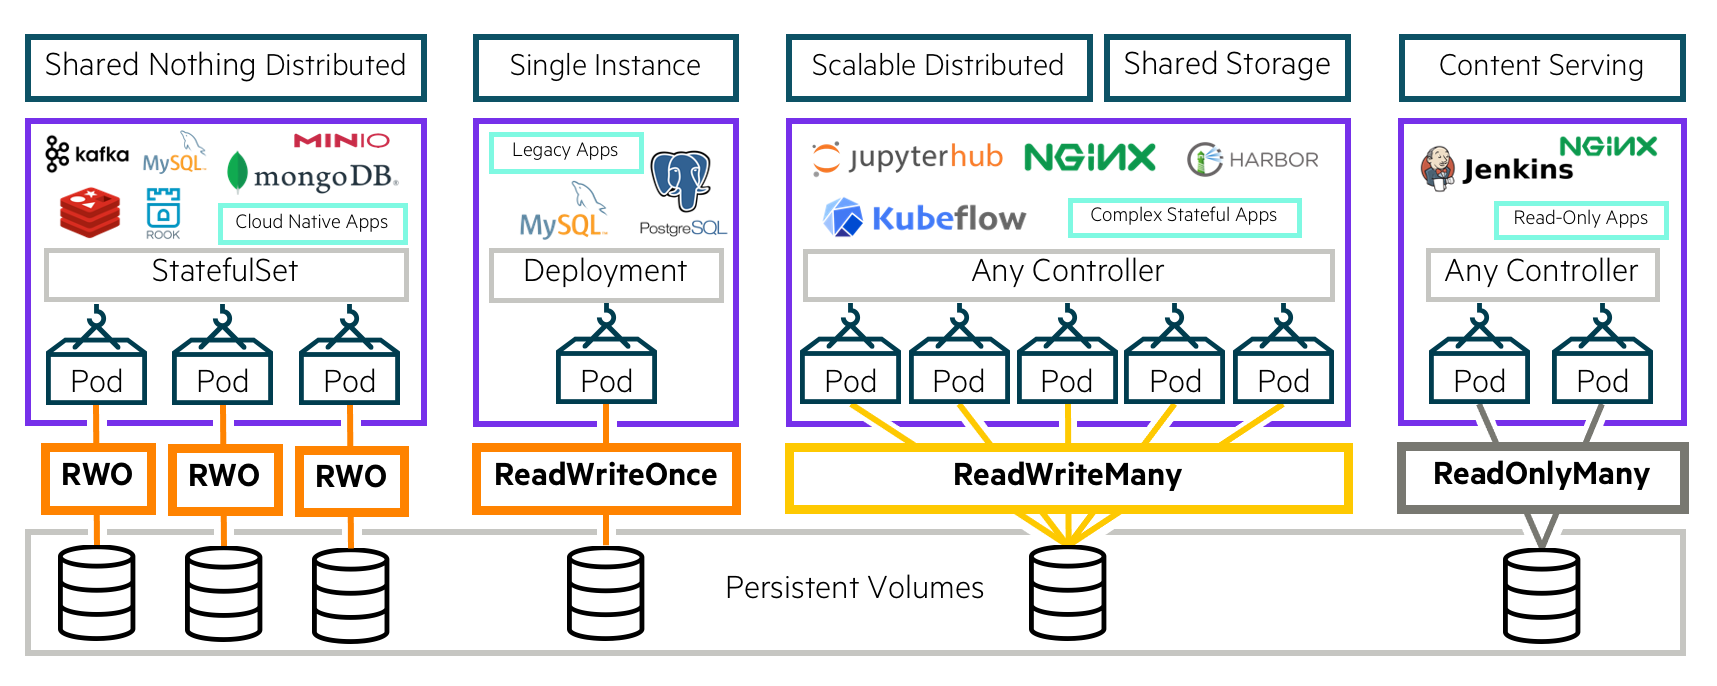 HPE CSI Driver for Kubernetes with the NFS Server Provisioner